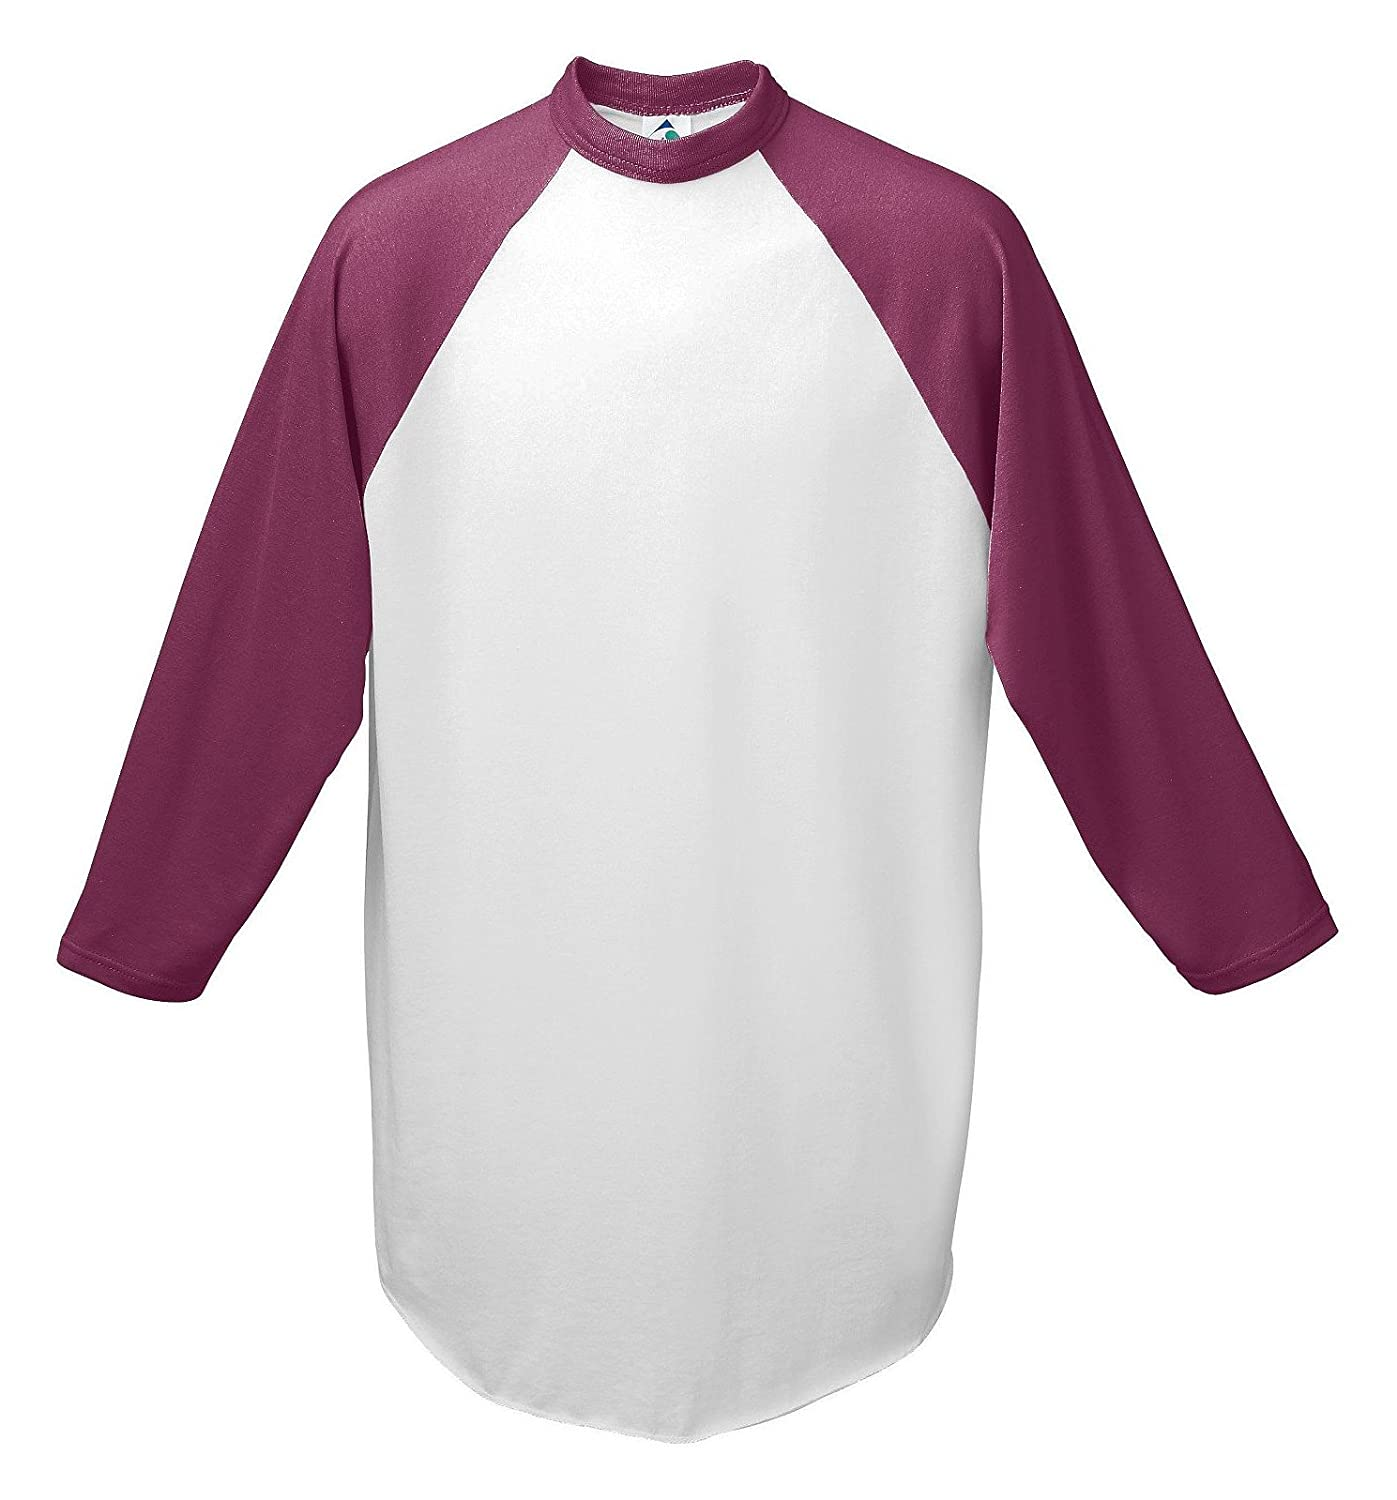 Youth Baseball Jersey, Color: White/Maroon, Size: Medium купить